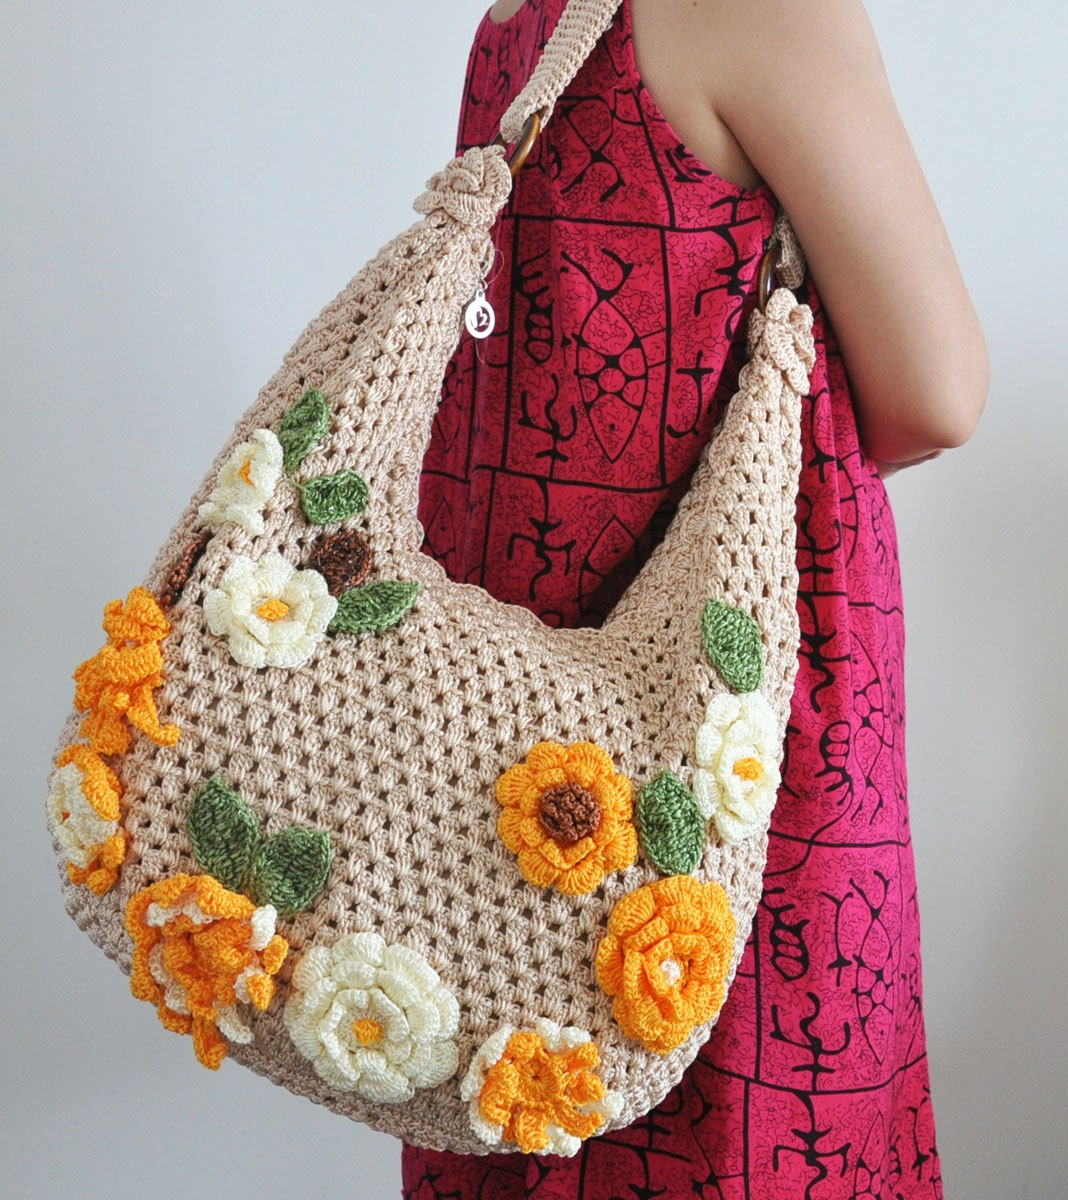 FLORAL BAG 5 Crochet Flower Applique Bag by jennysunny on Etsy